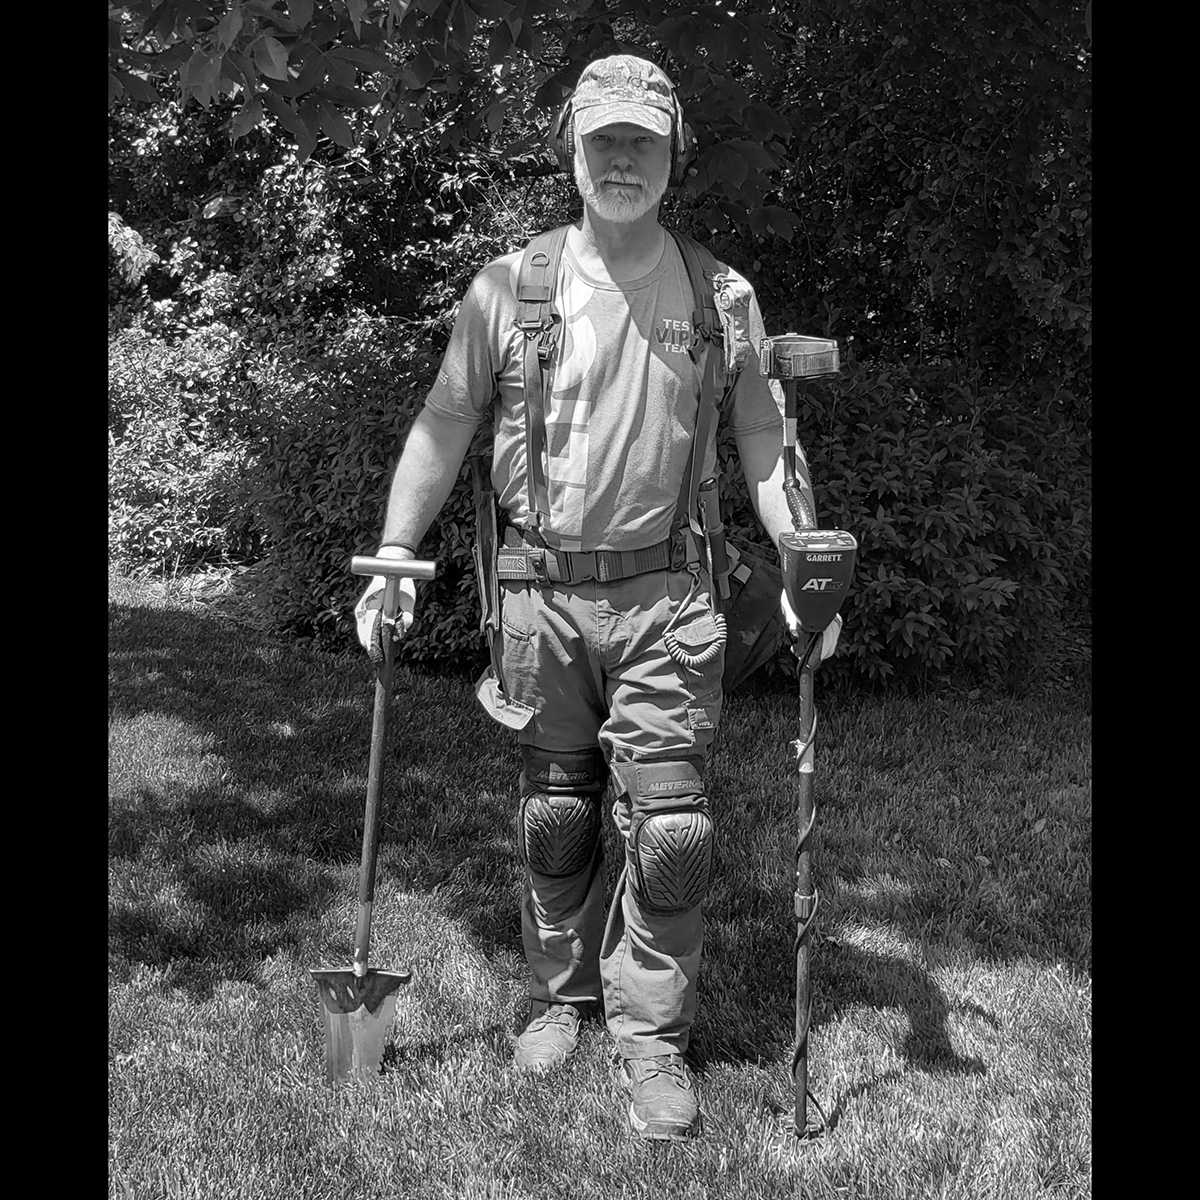 Black and White Image of Eric Reed of Reawakening History Holding Two Metal Detectors Standing in Grassy Area with Leaves and Trees in the Background